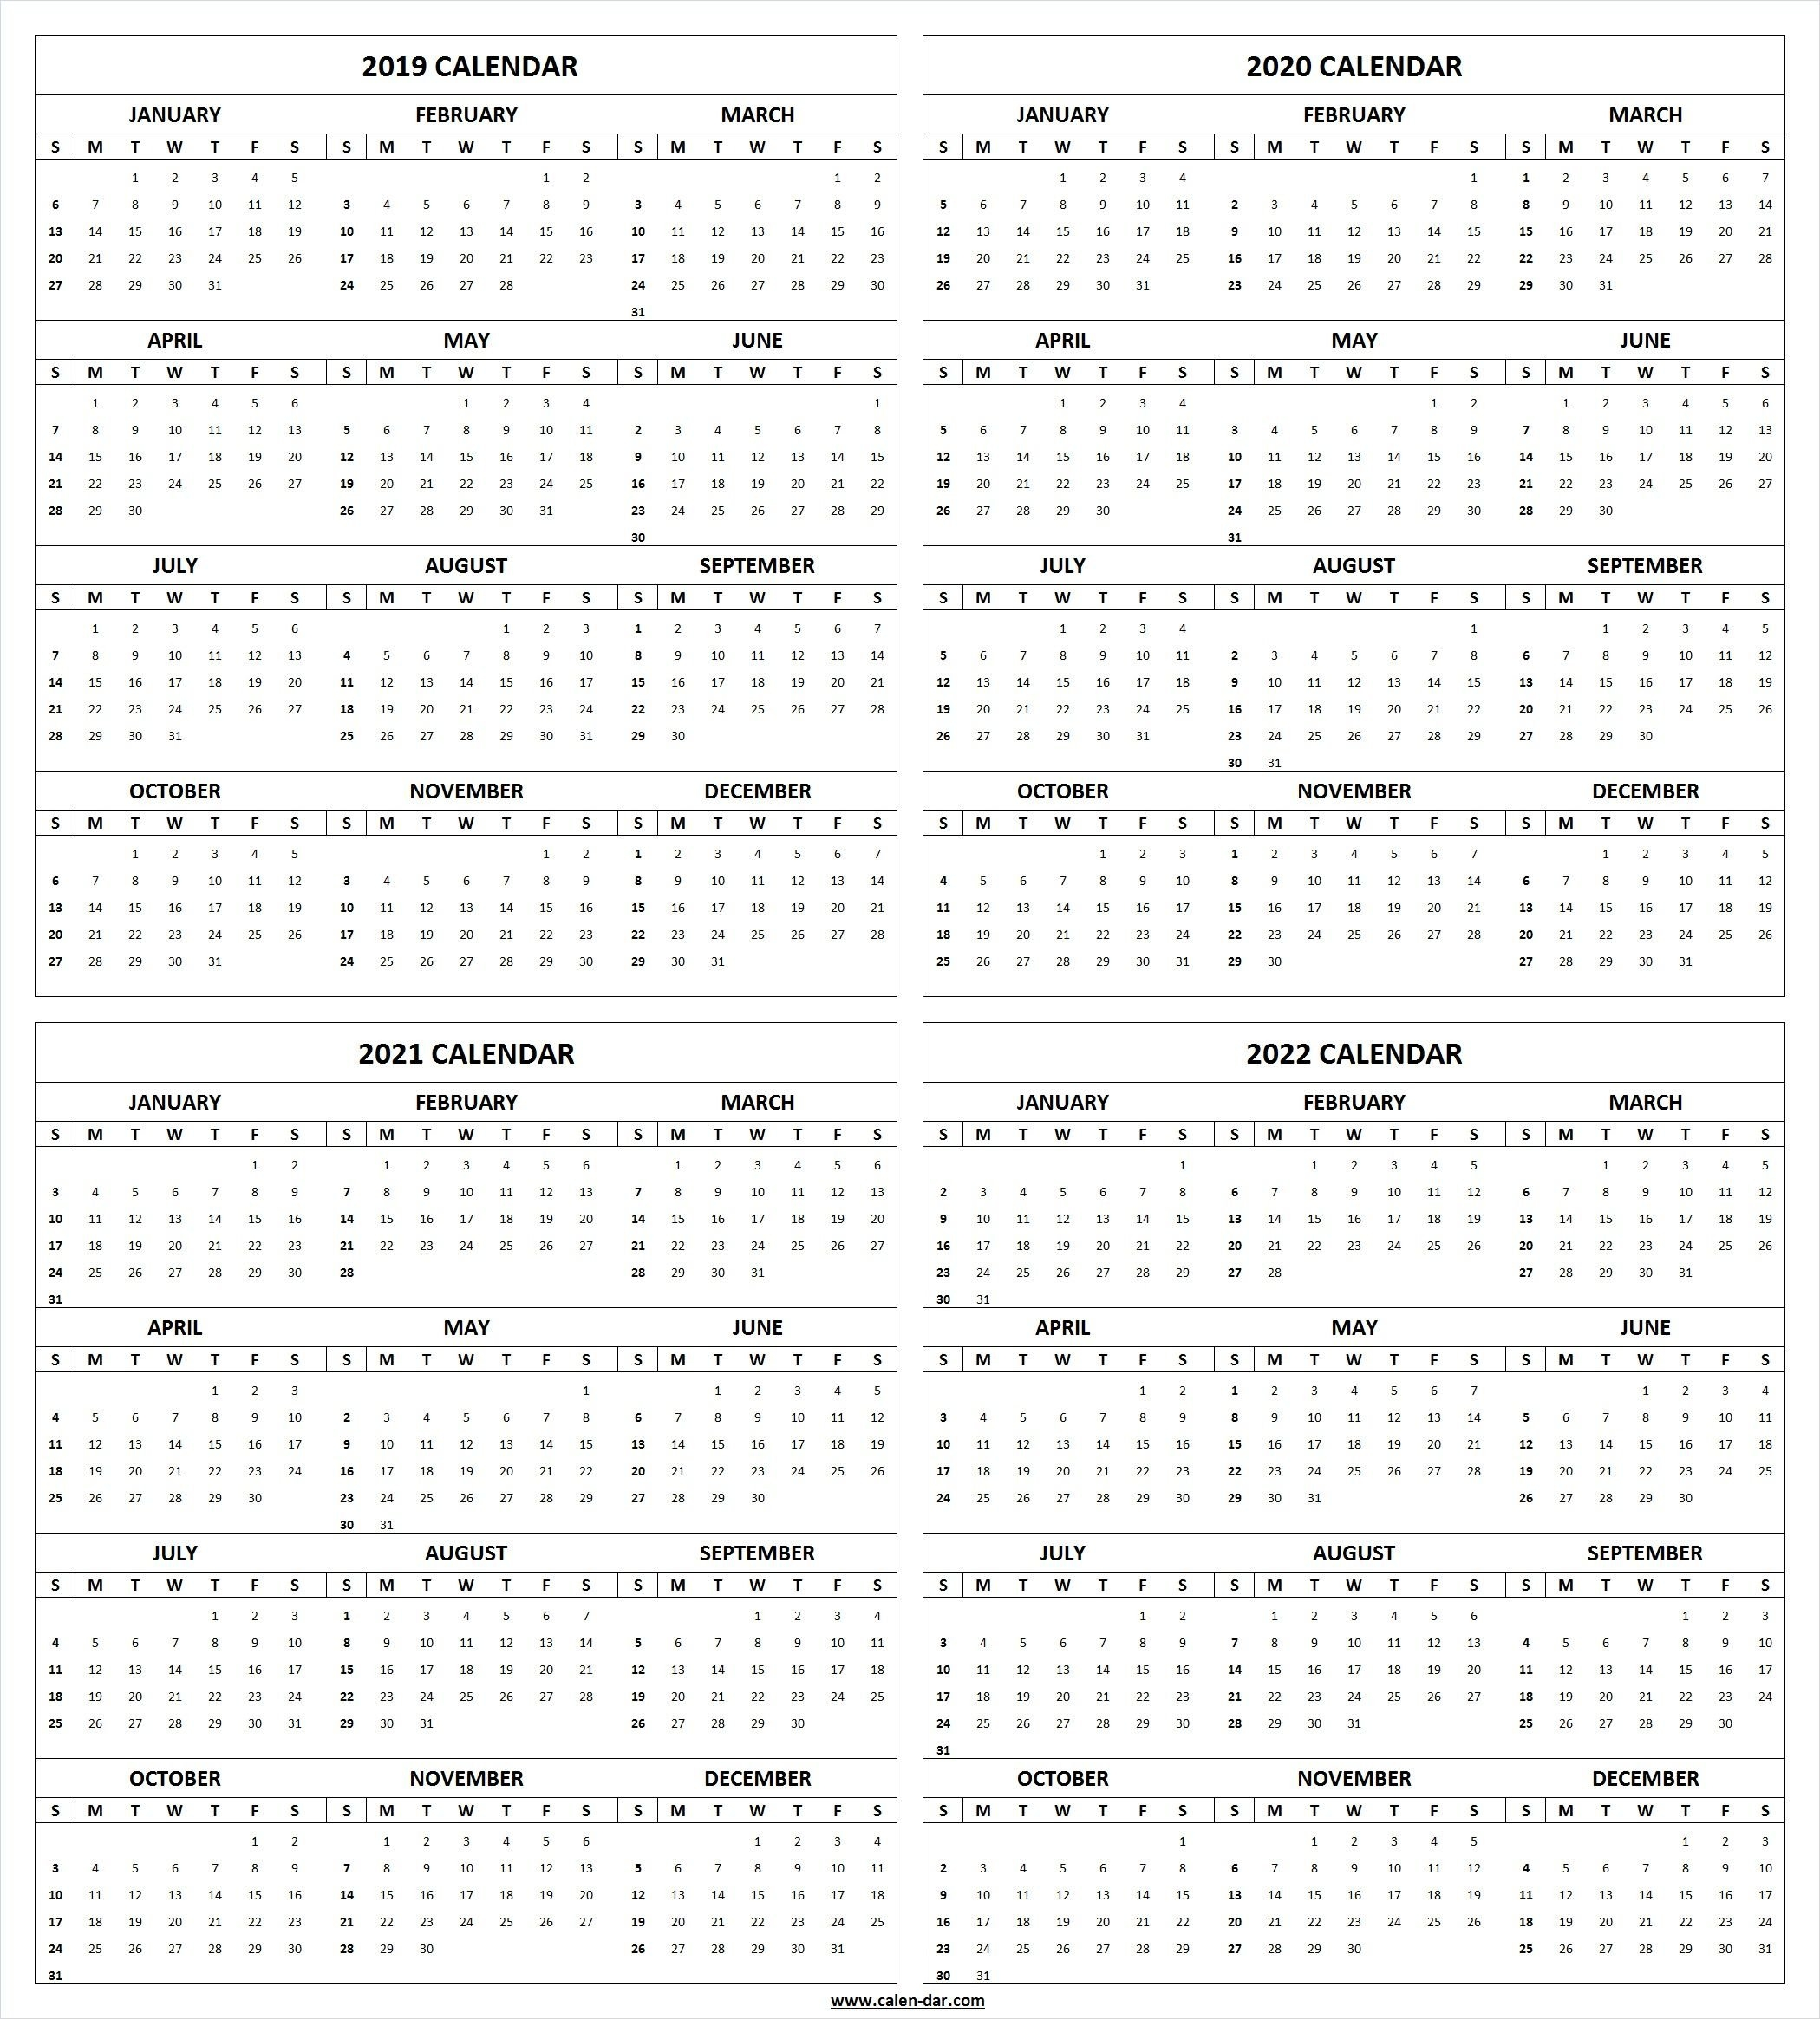 Get Free Blank Printable 2019 2020 2021 2022 Calendar Template 4 Year Calendar 2019 To 2022 Printable